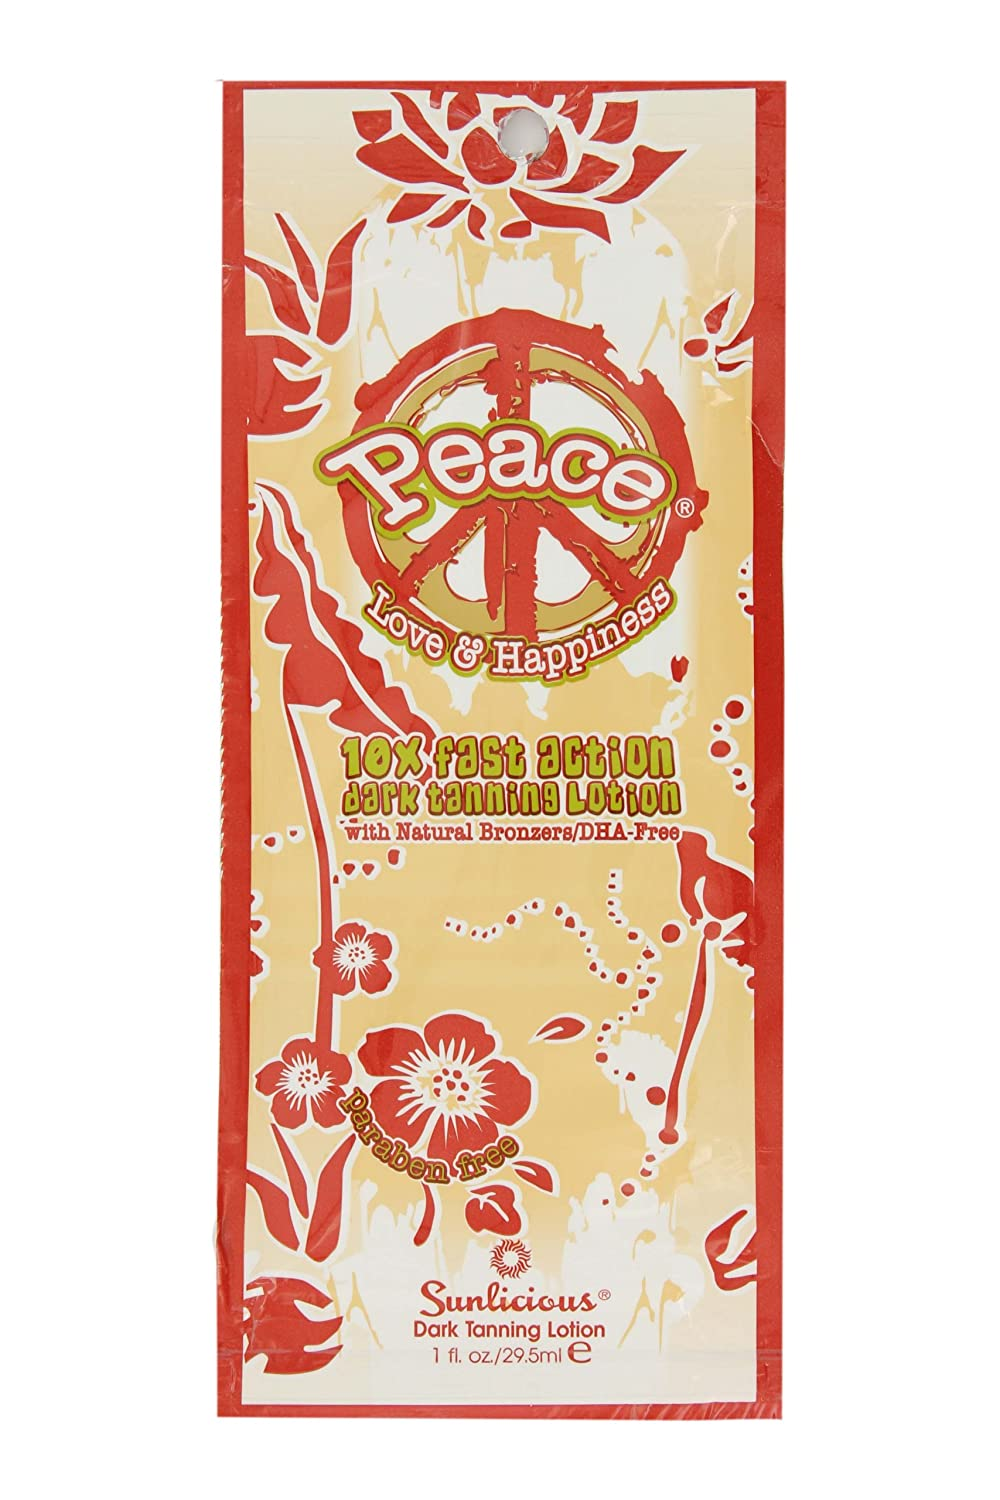 Synergy Tan Peace Love and Happiness Fast Action Dark Tanning Lotion 369 ml ST2027